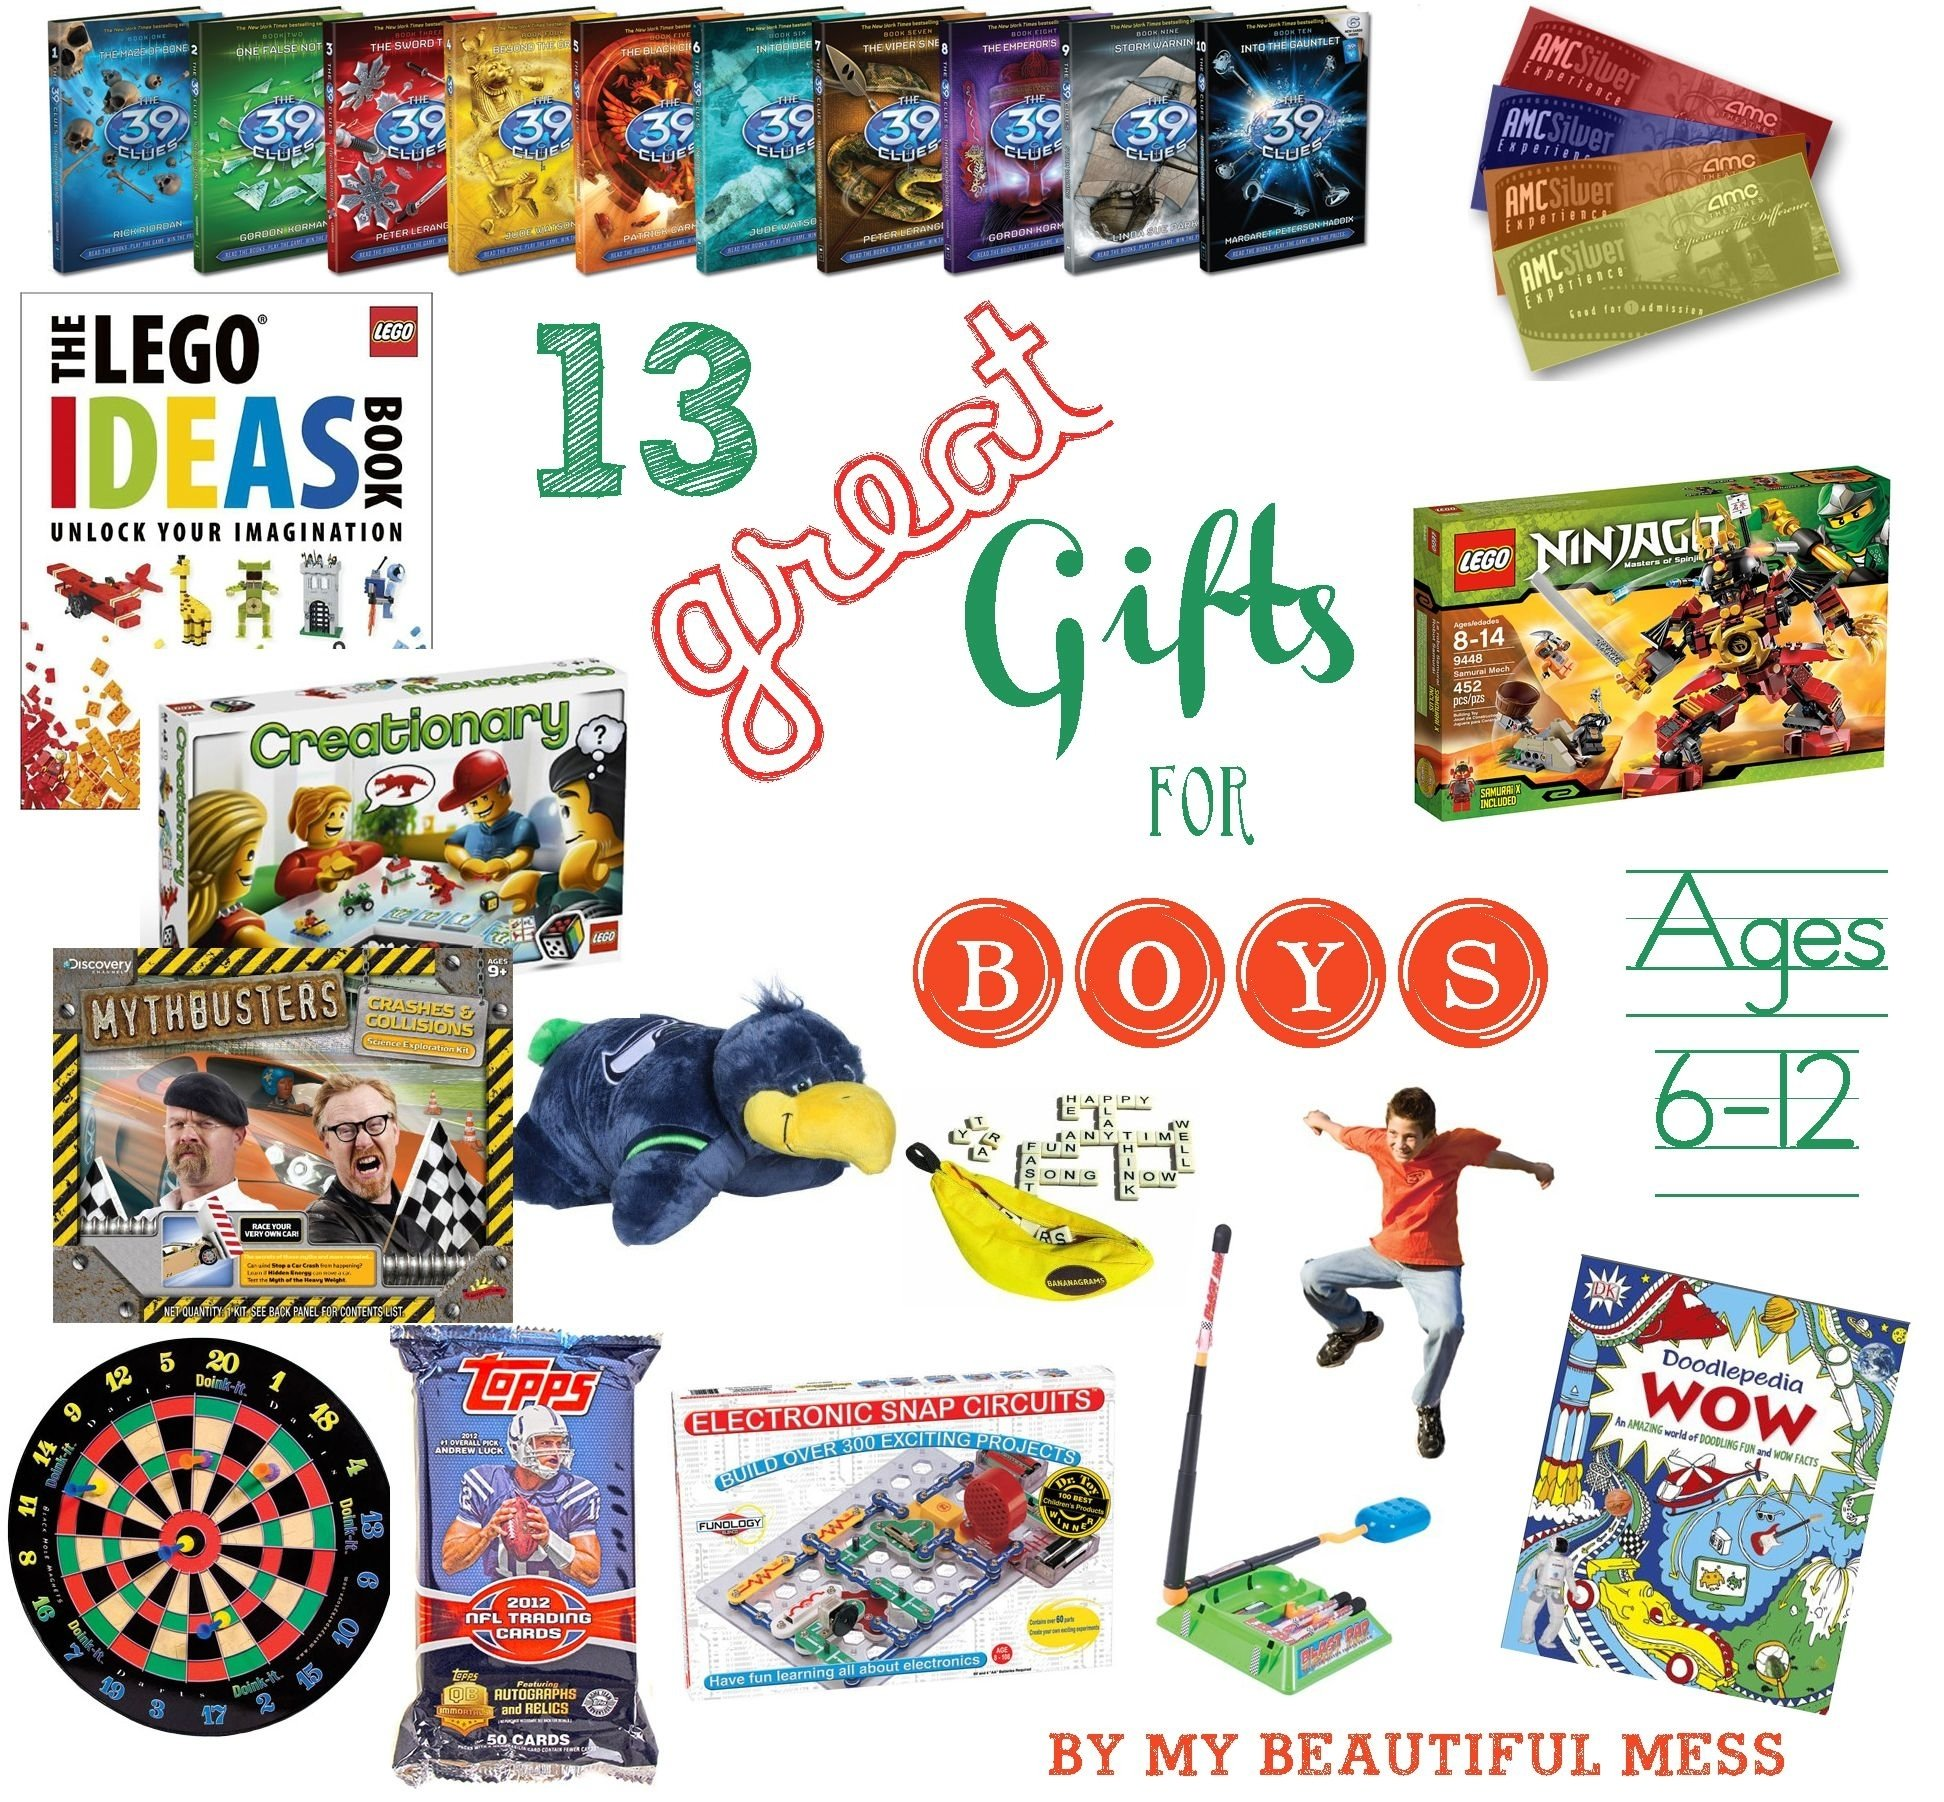 13 great gift ideas for grade school aged boys {ages 6-12